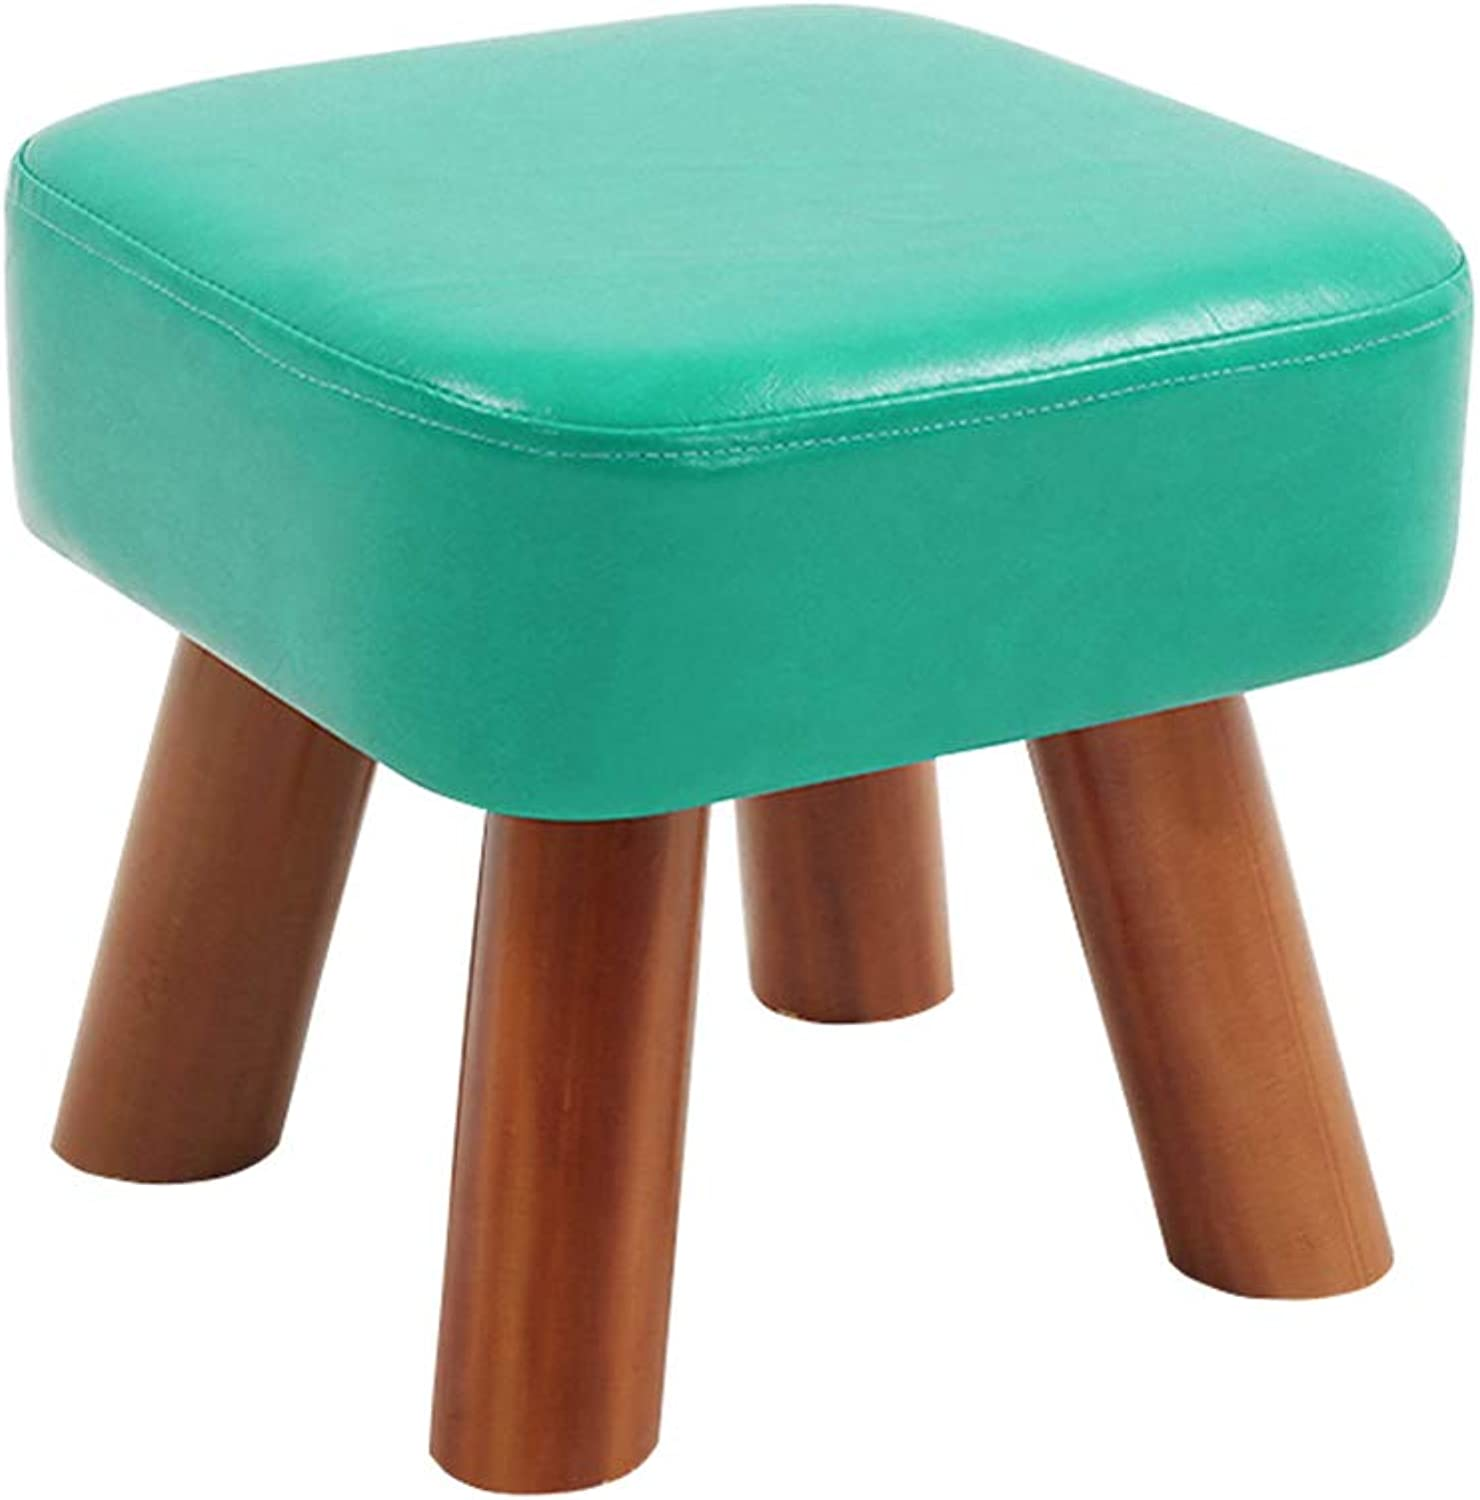 Chair - Home Environmental Soft and Comfortable Solid Wood Living Room Adult Stool Chair (color   bluee, Size   28  28  25cm)